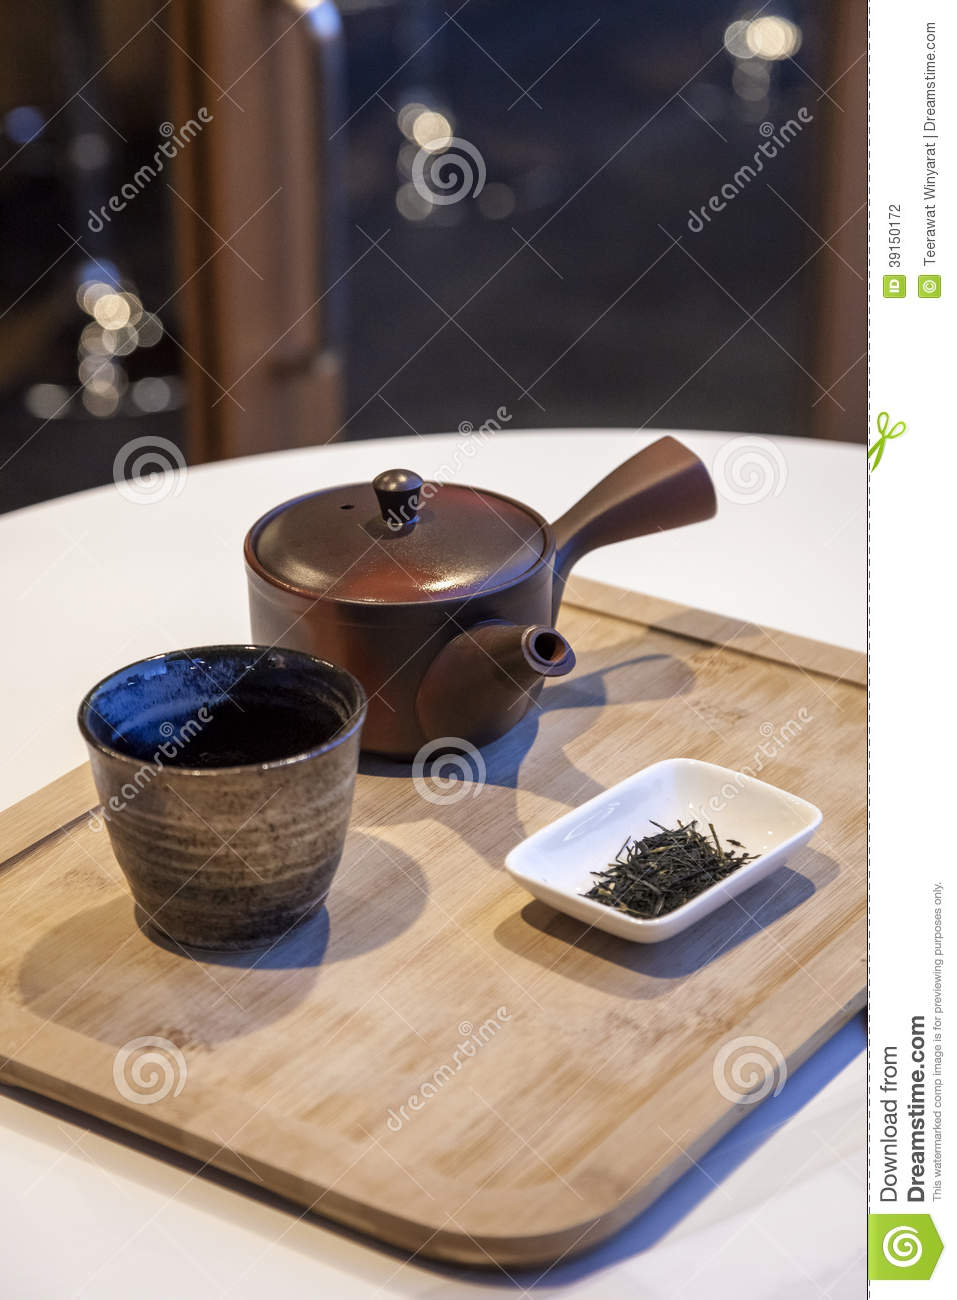 Japanese Tea Set With Tea Leaf On Wooden Tray Stock Photo